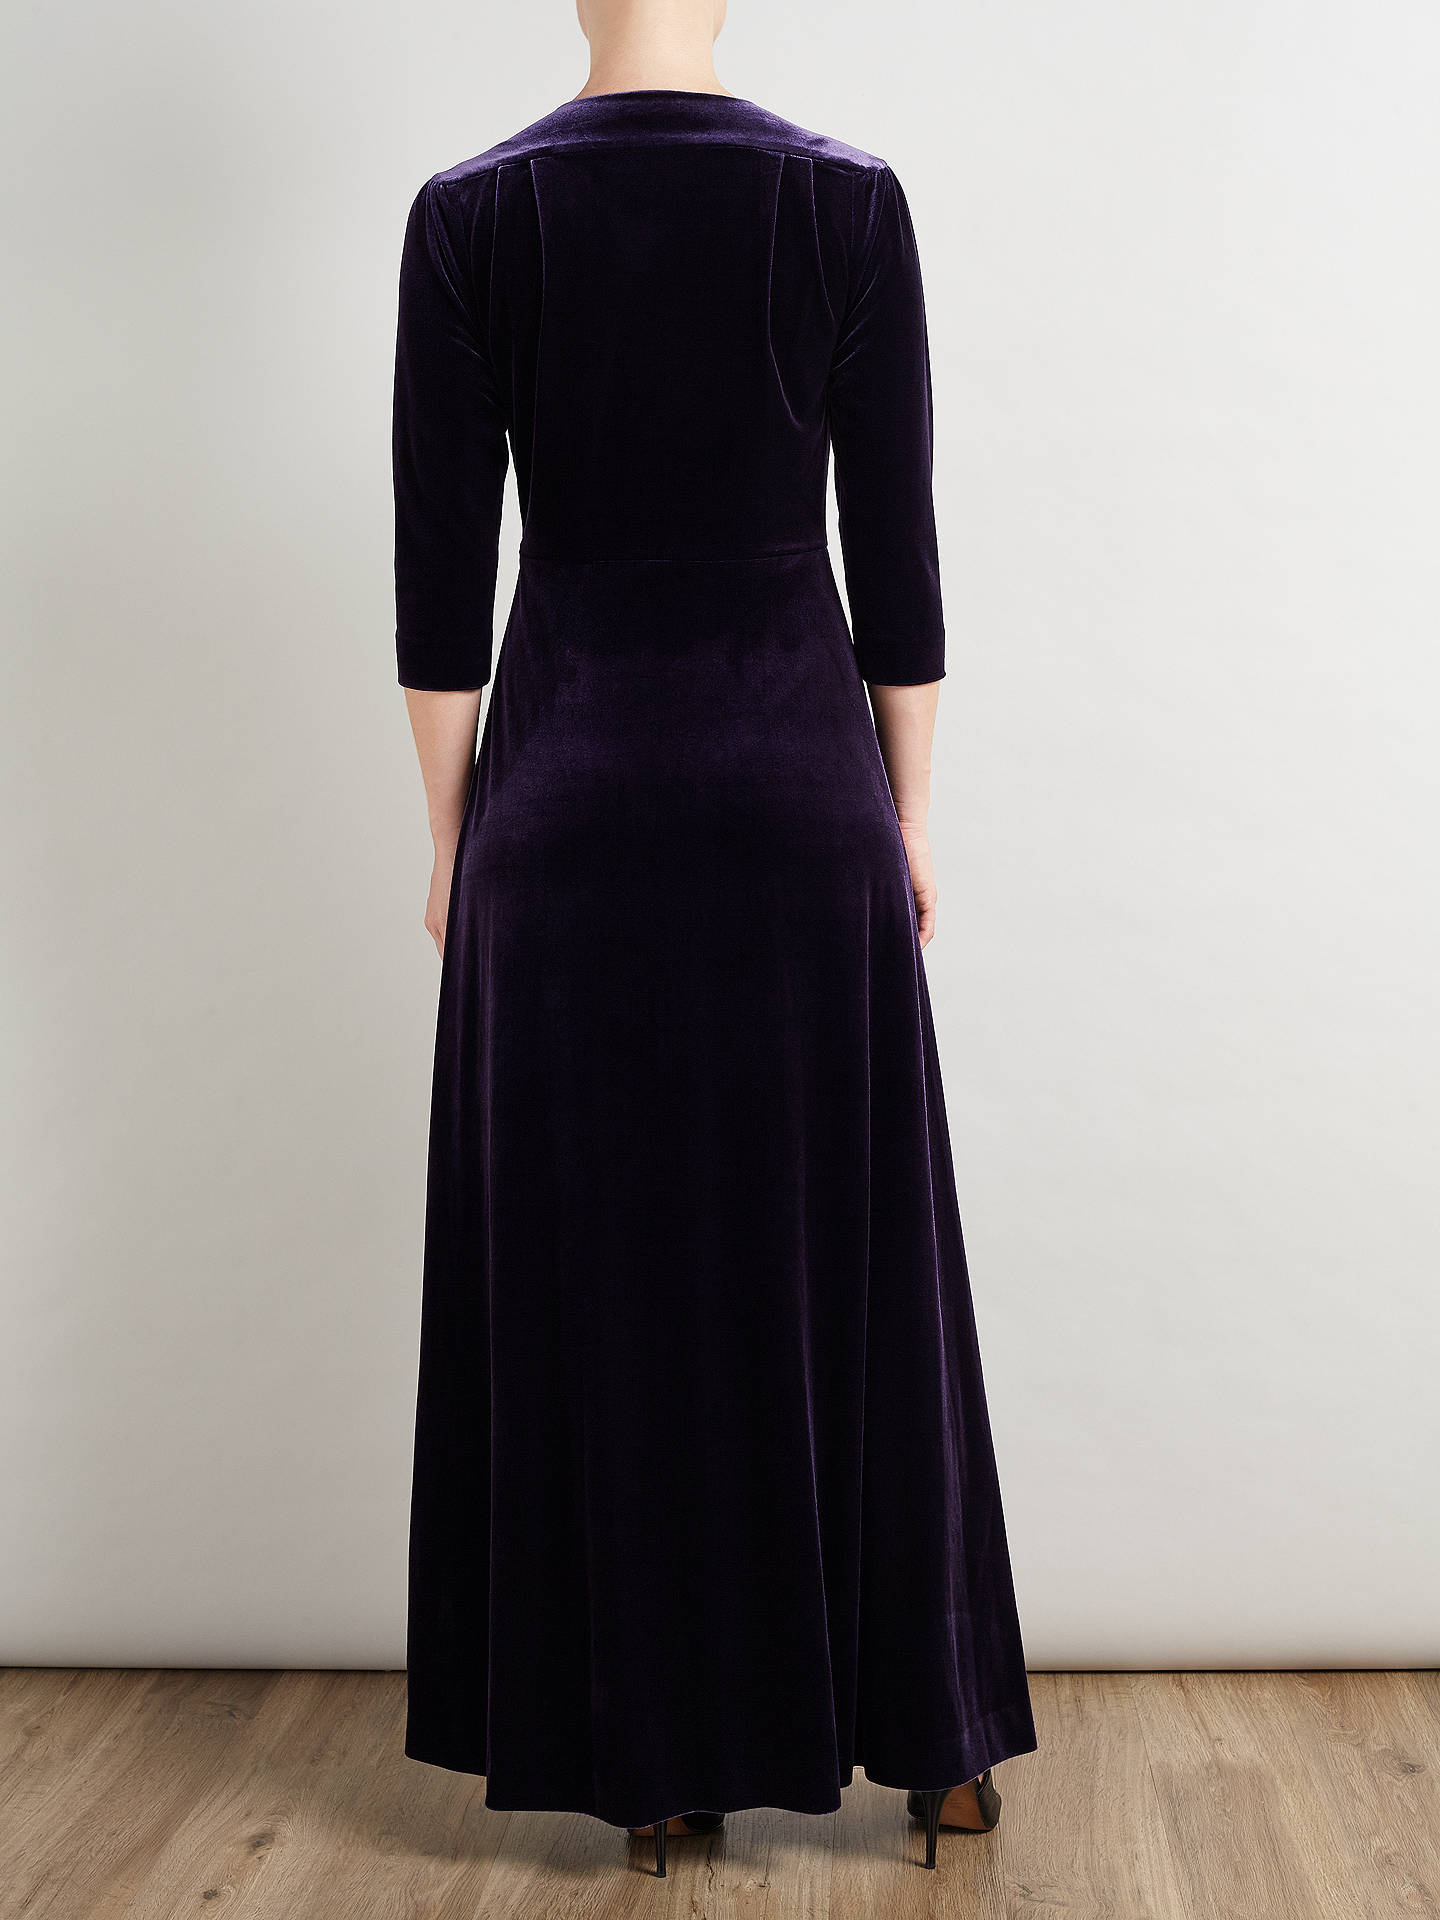 Bruce by Bruce Oldfield Velvet Maxi Dress, Deep Purple at John Lewis ...